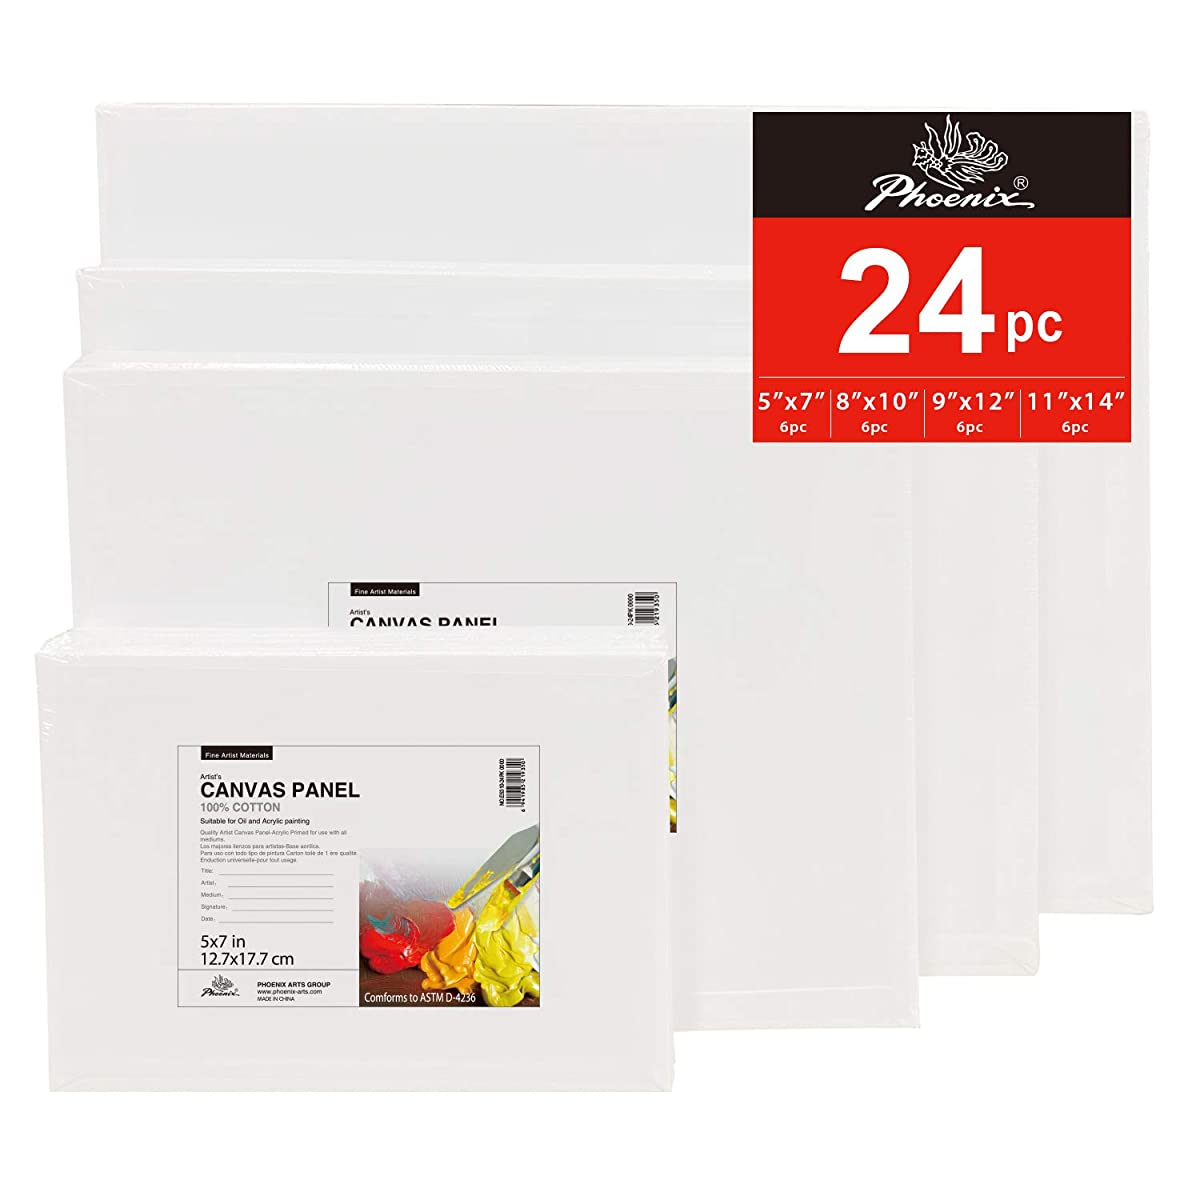 PHOENIX Painting Canvas Panel Boards Multi Pack - 6 Pack Each of 5x7, 8x10, 9x12, 11x14 Inch (24 pcs in Total) - 1/7 Inch Deep Super Value Pack for Professional Artists, Students & Kids